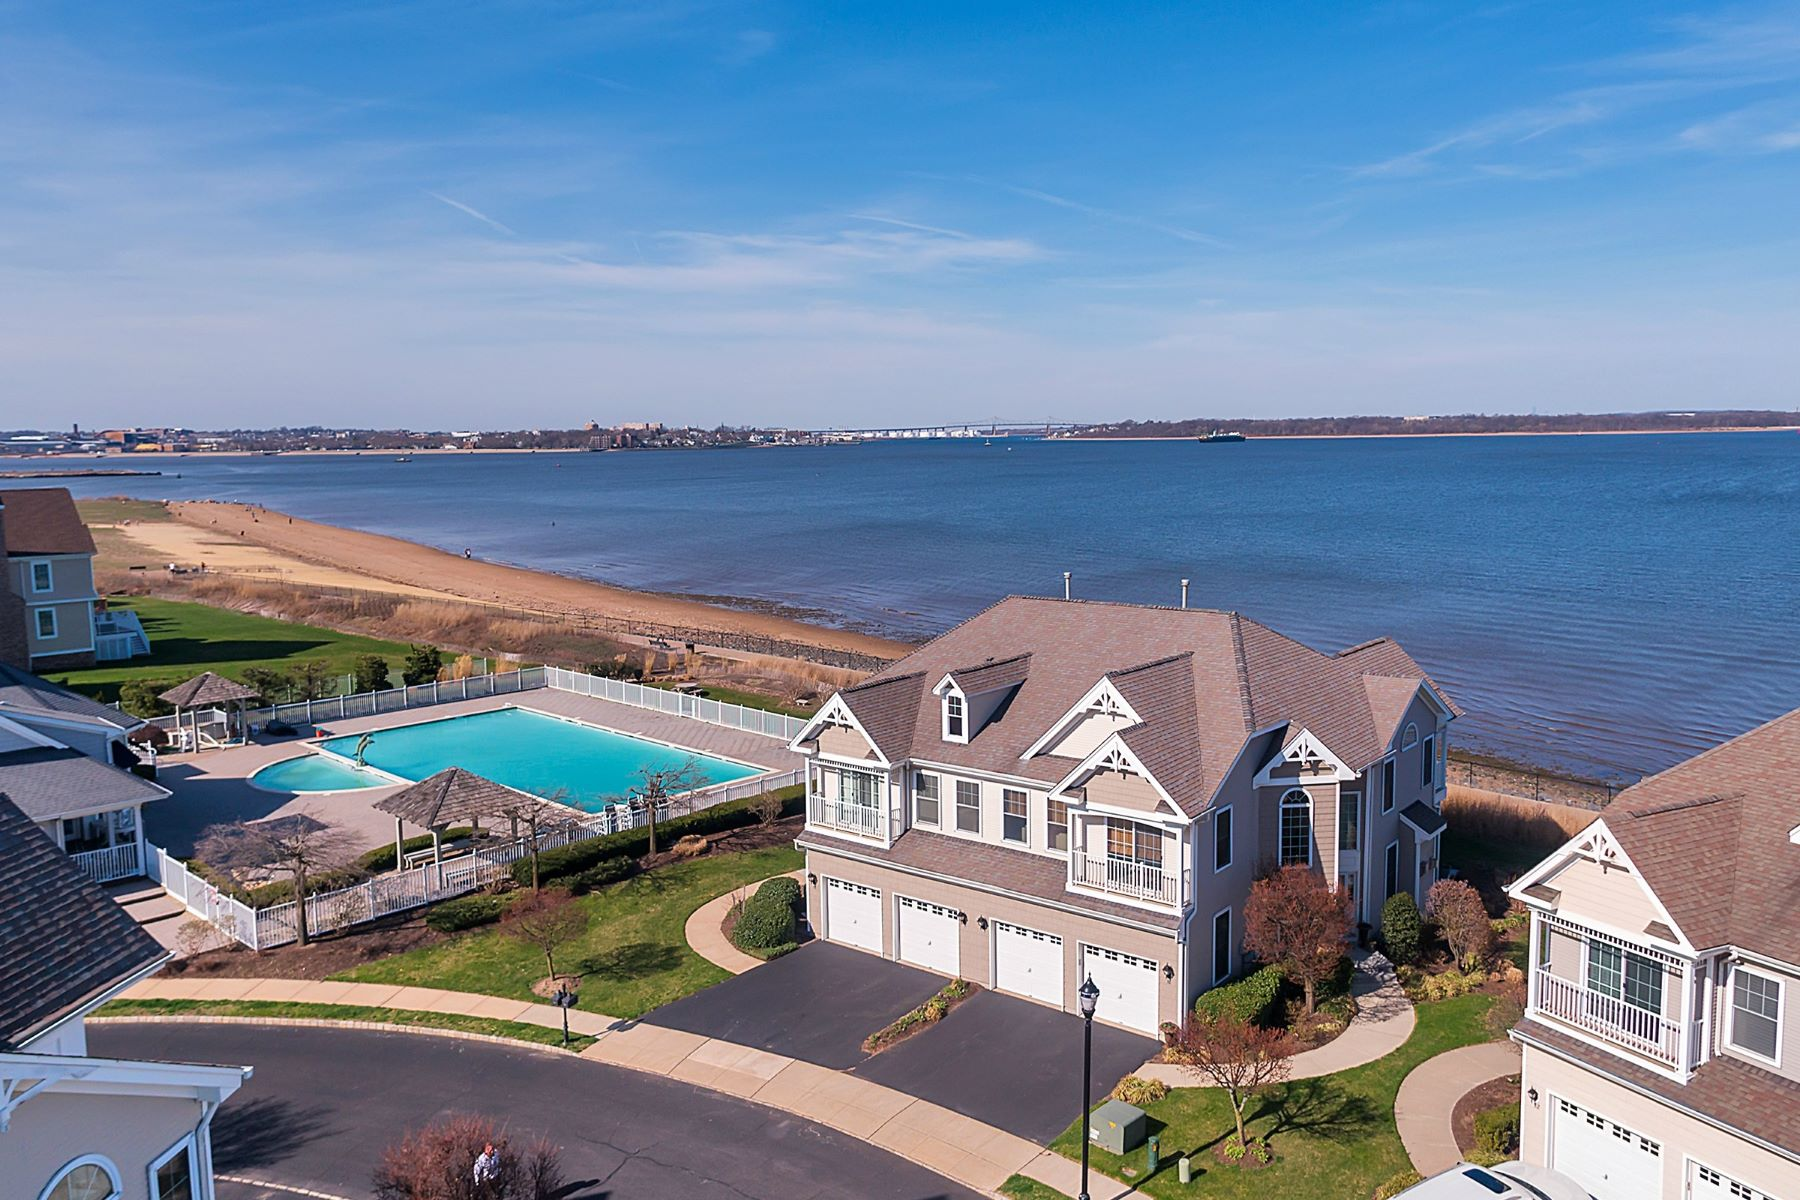 Casa Unifamiliar por un Venta en Premier Waterfront in Lighthouse Bay 30 South Shore Drive South Amboy, Nueva Jersey 08879 Estados Unidos